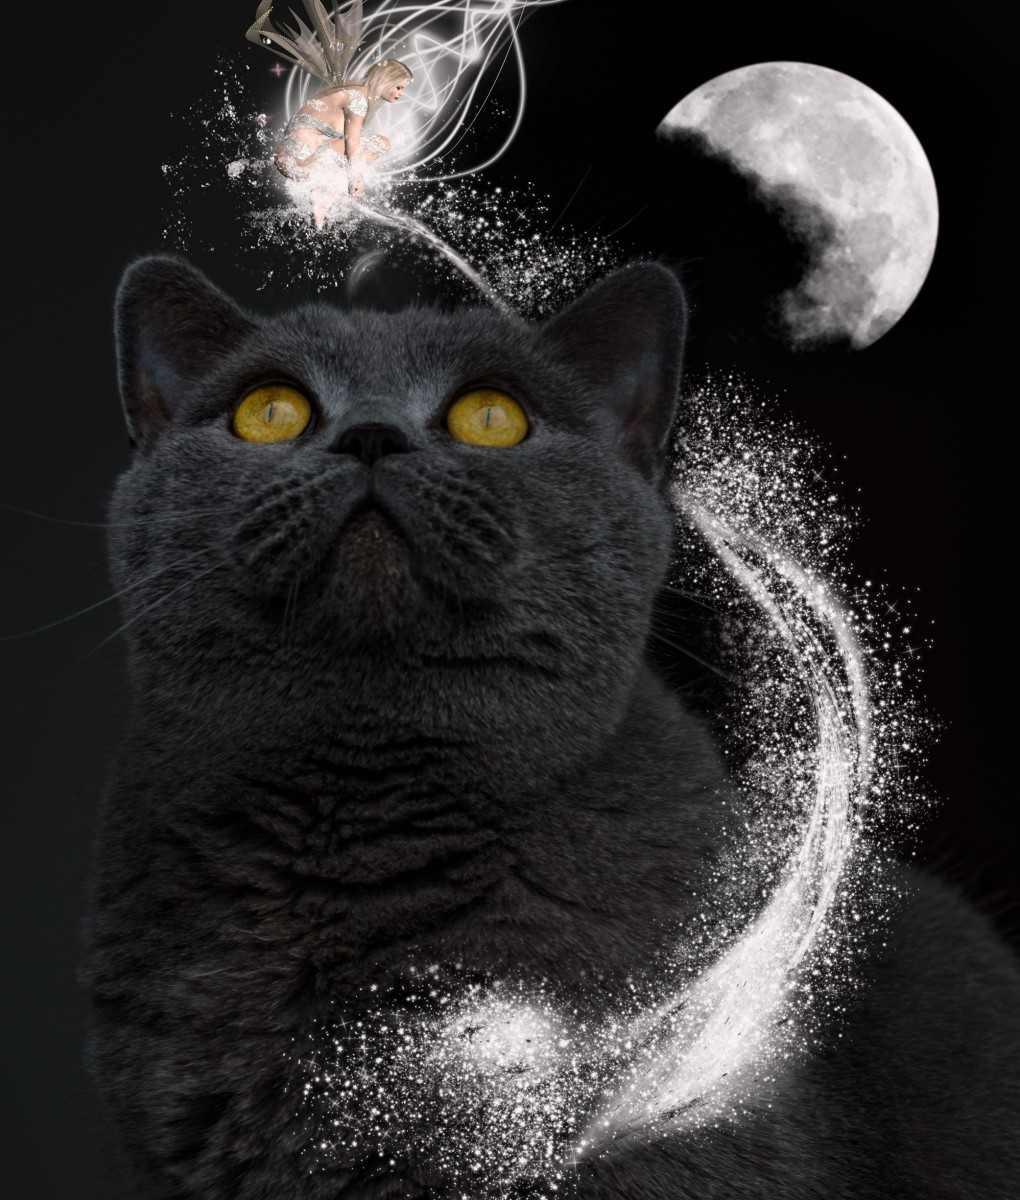 cats-in-a-dream-the-meaning-of-cats-as-dream-symbols